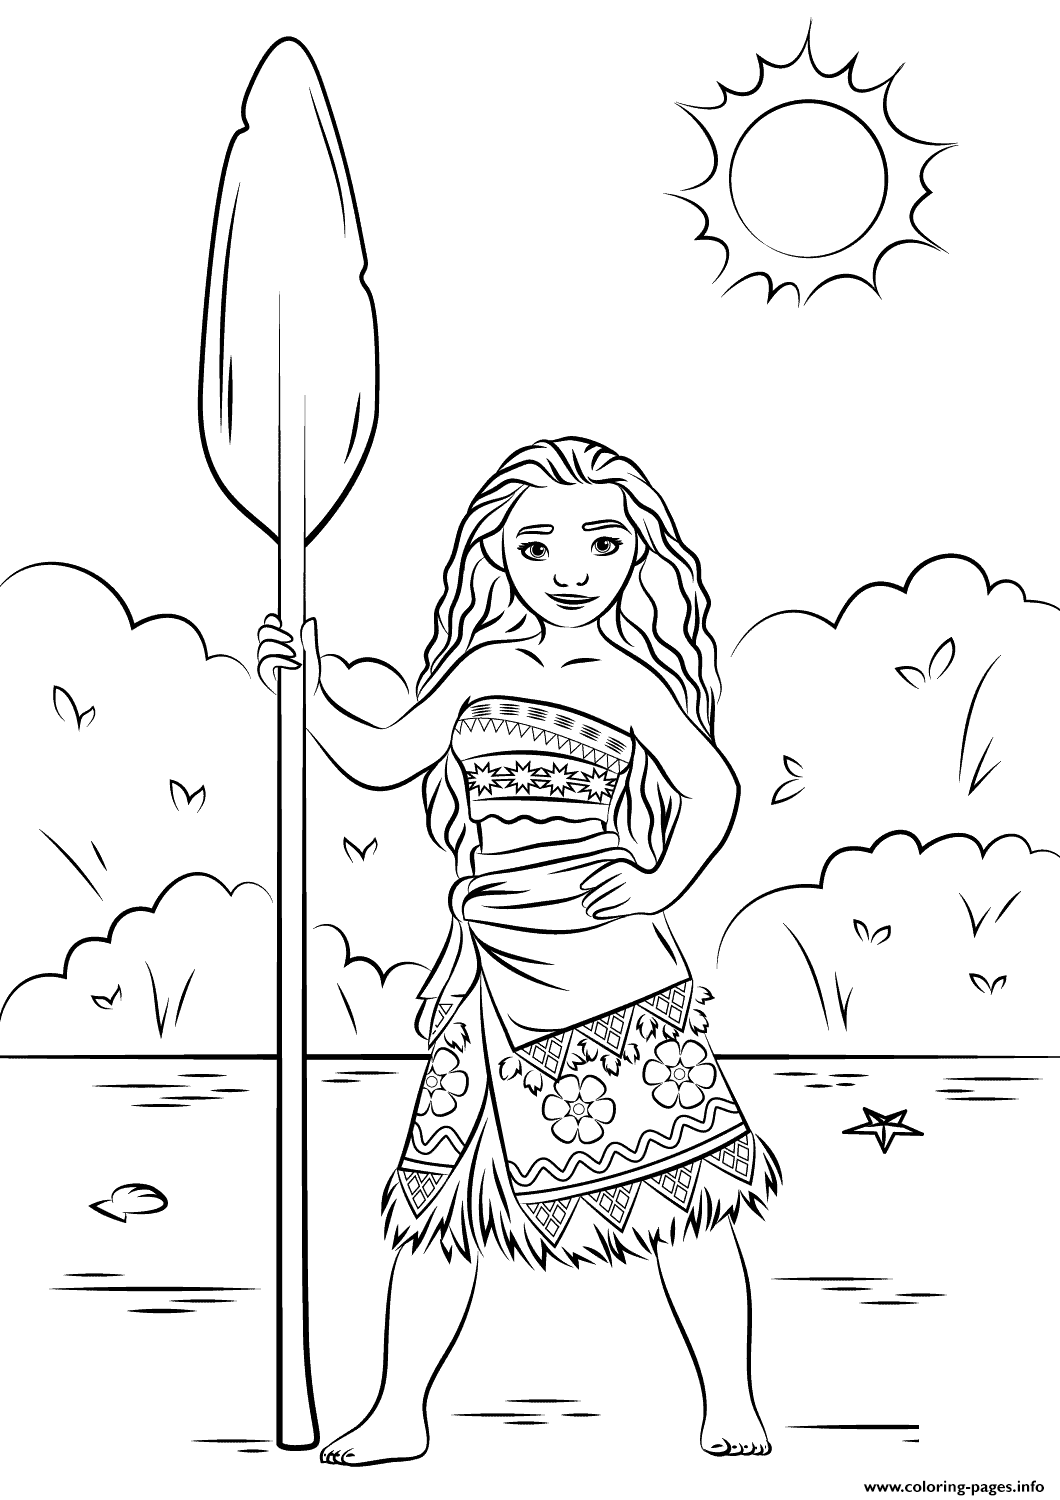 Disney princess birthday coloring pages - Print Princess Moana Disney Coloring Pages